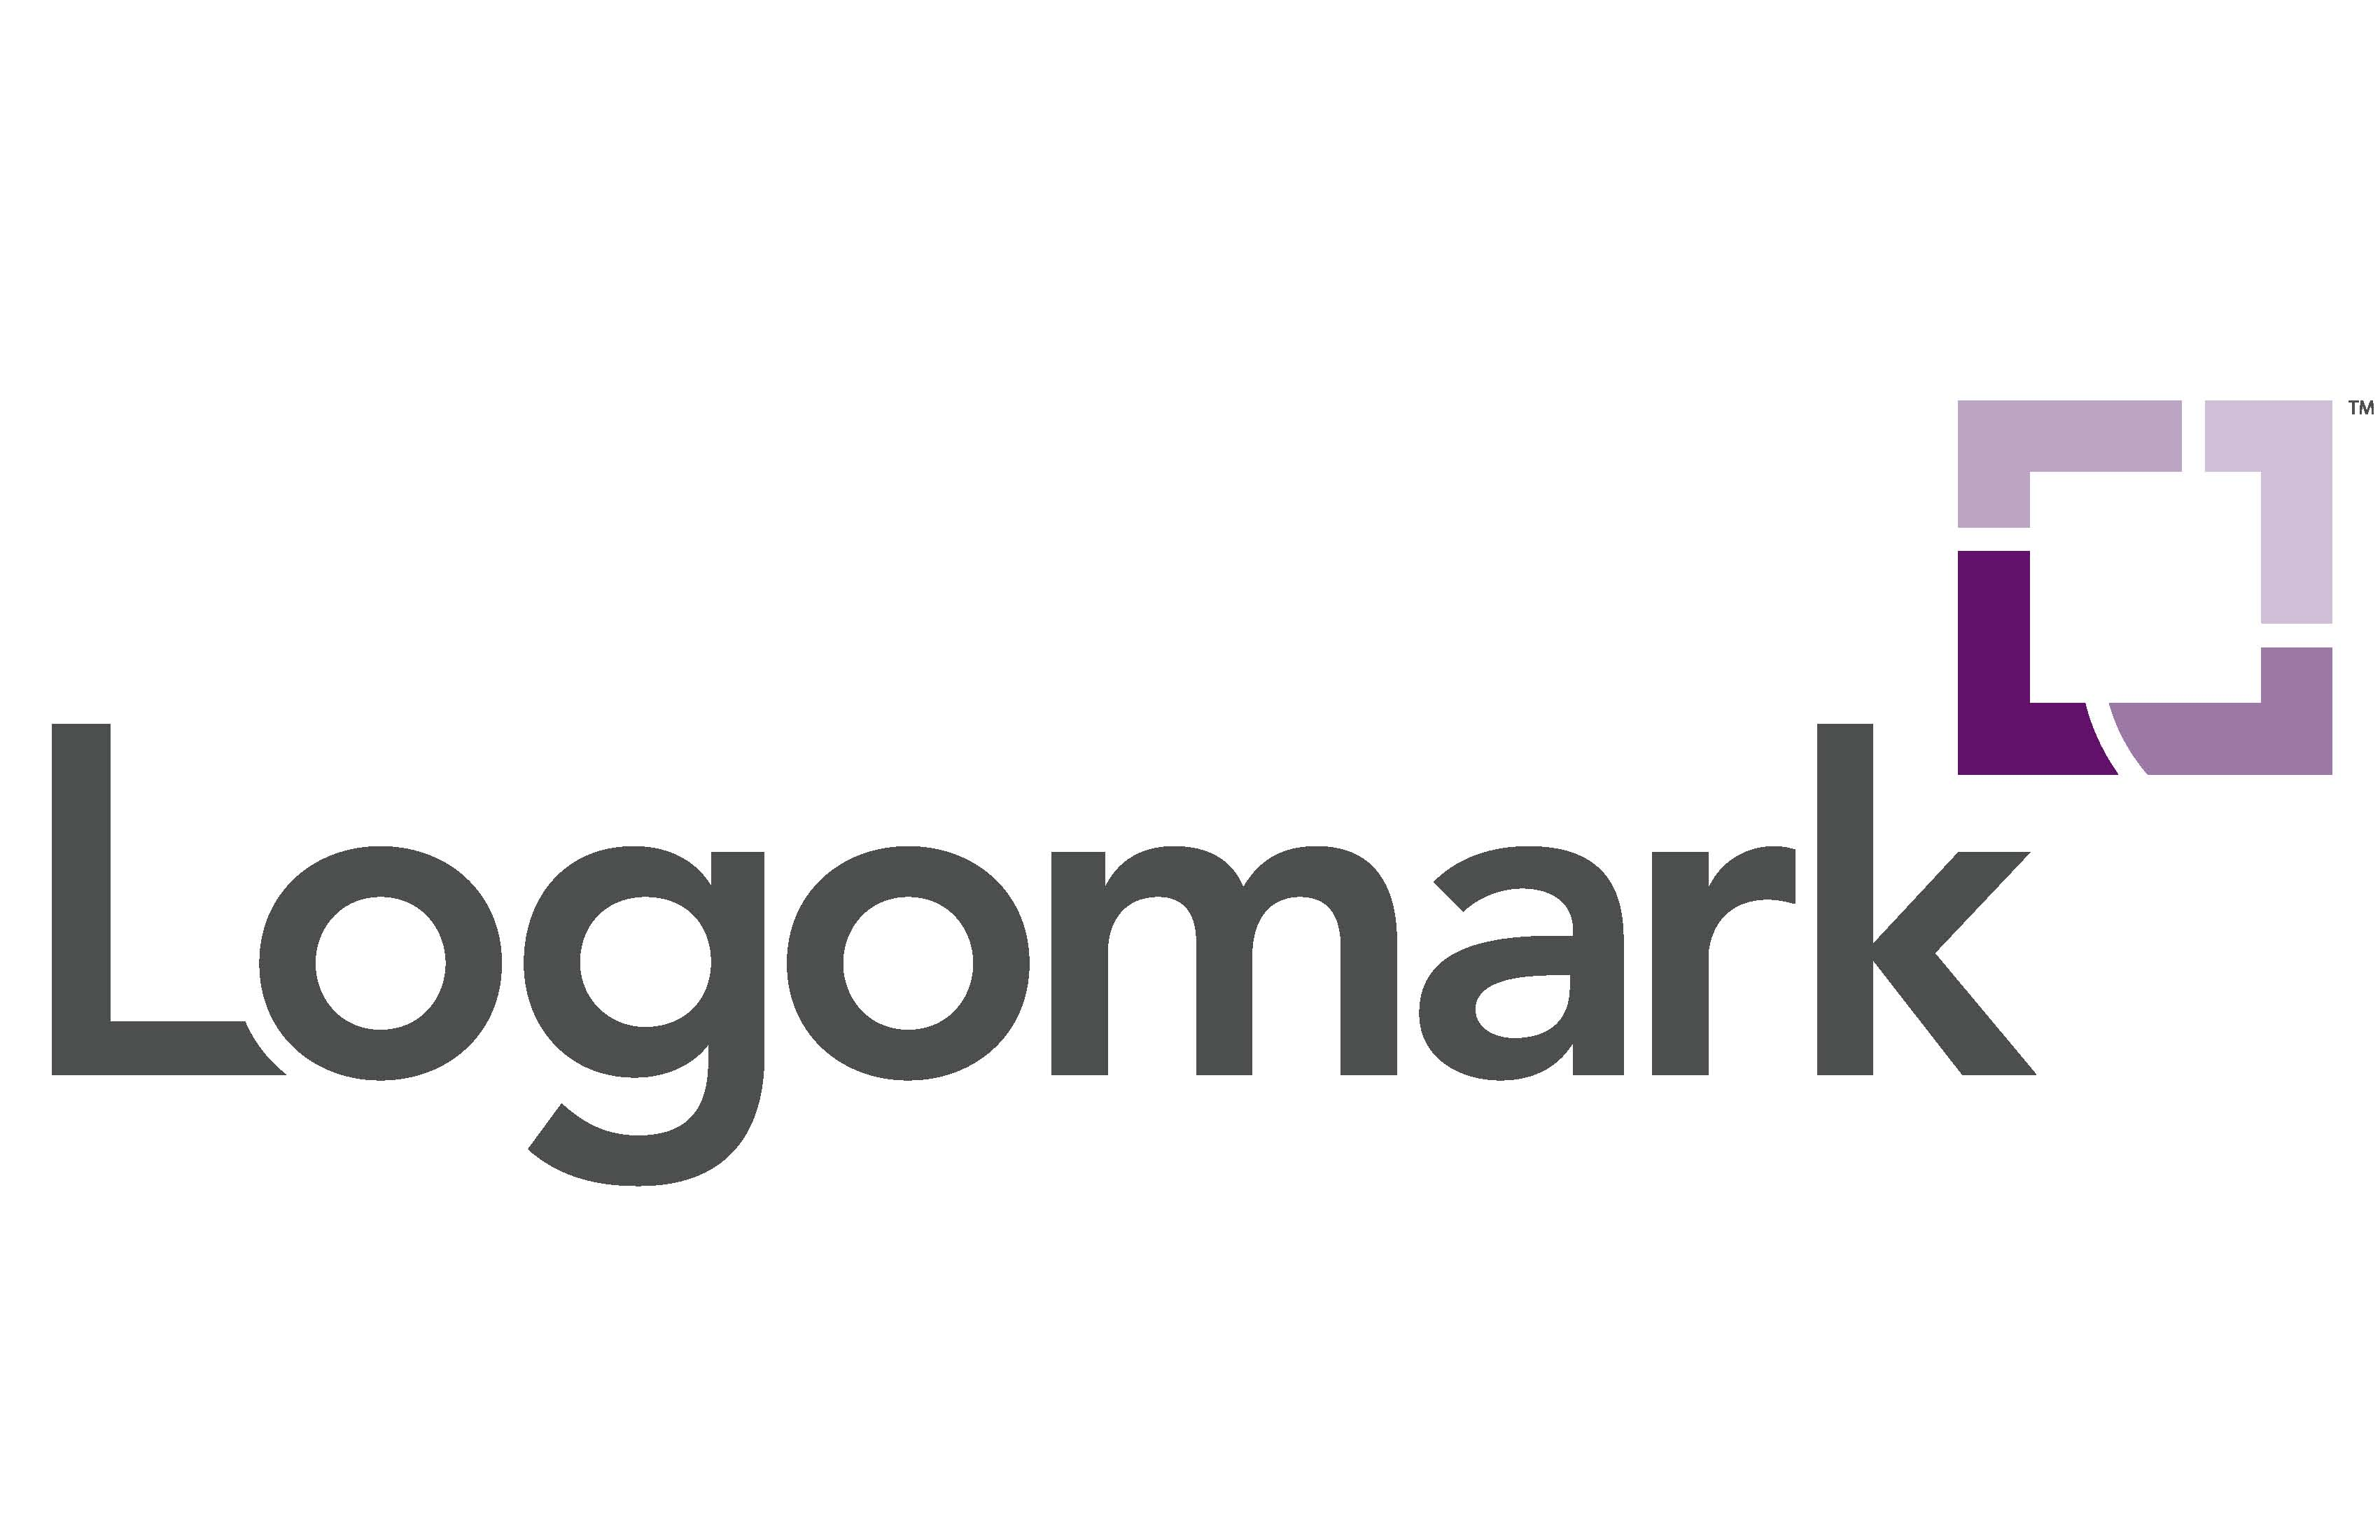 Logomark Adds New Flat Paper Product Line To Its Portfolio ...